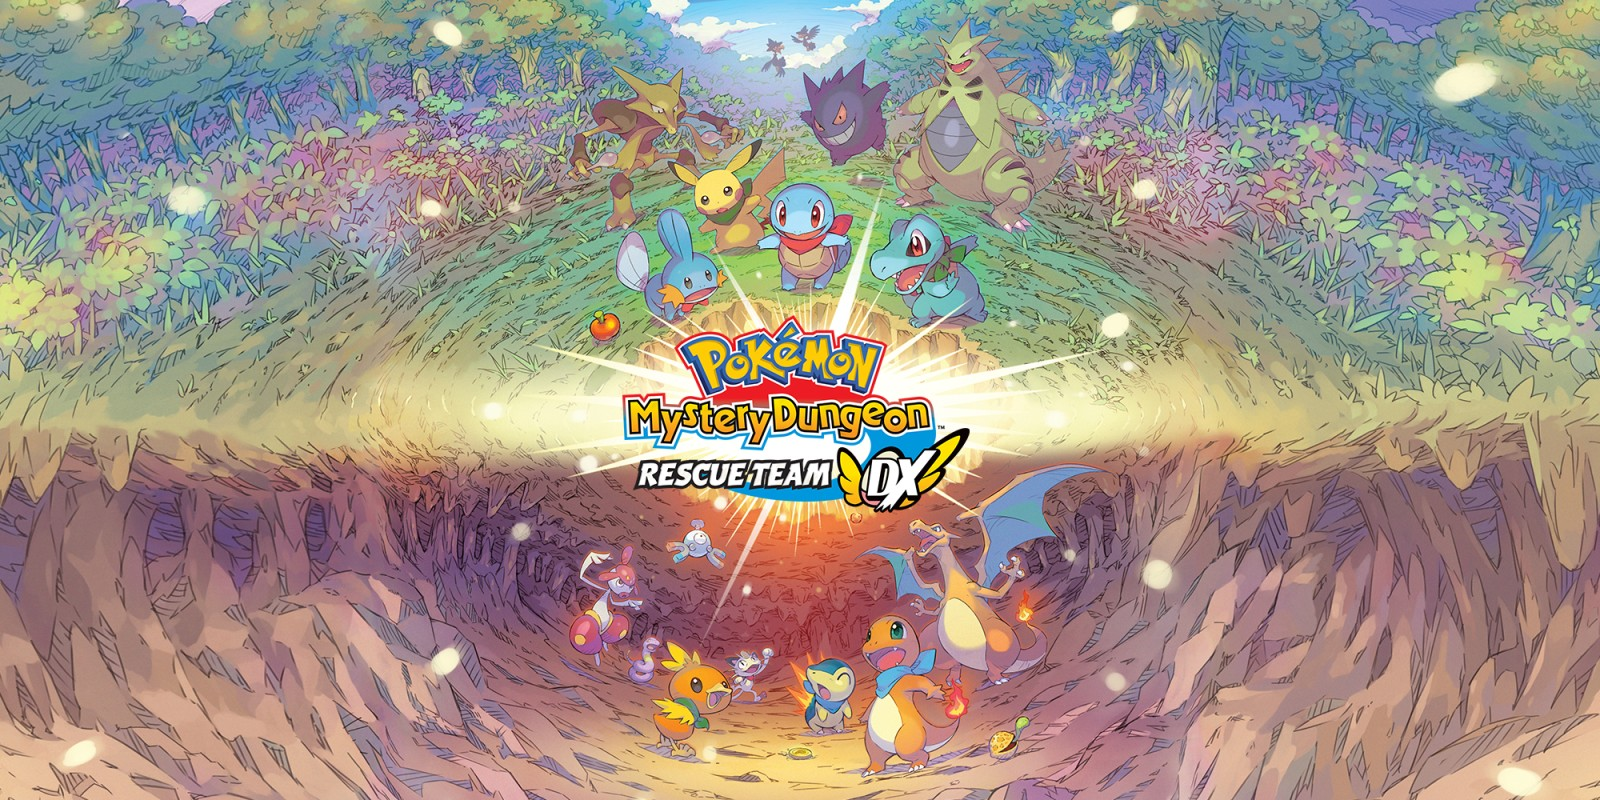 Νέο trailer για το Pokemon Mystery Dungeon DX